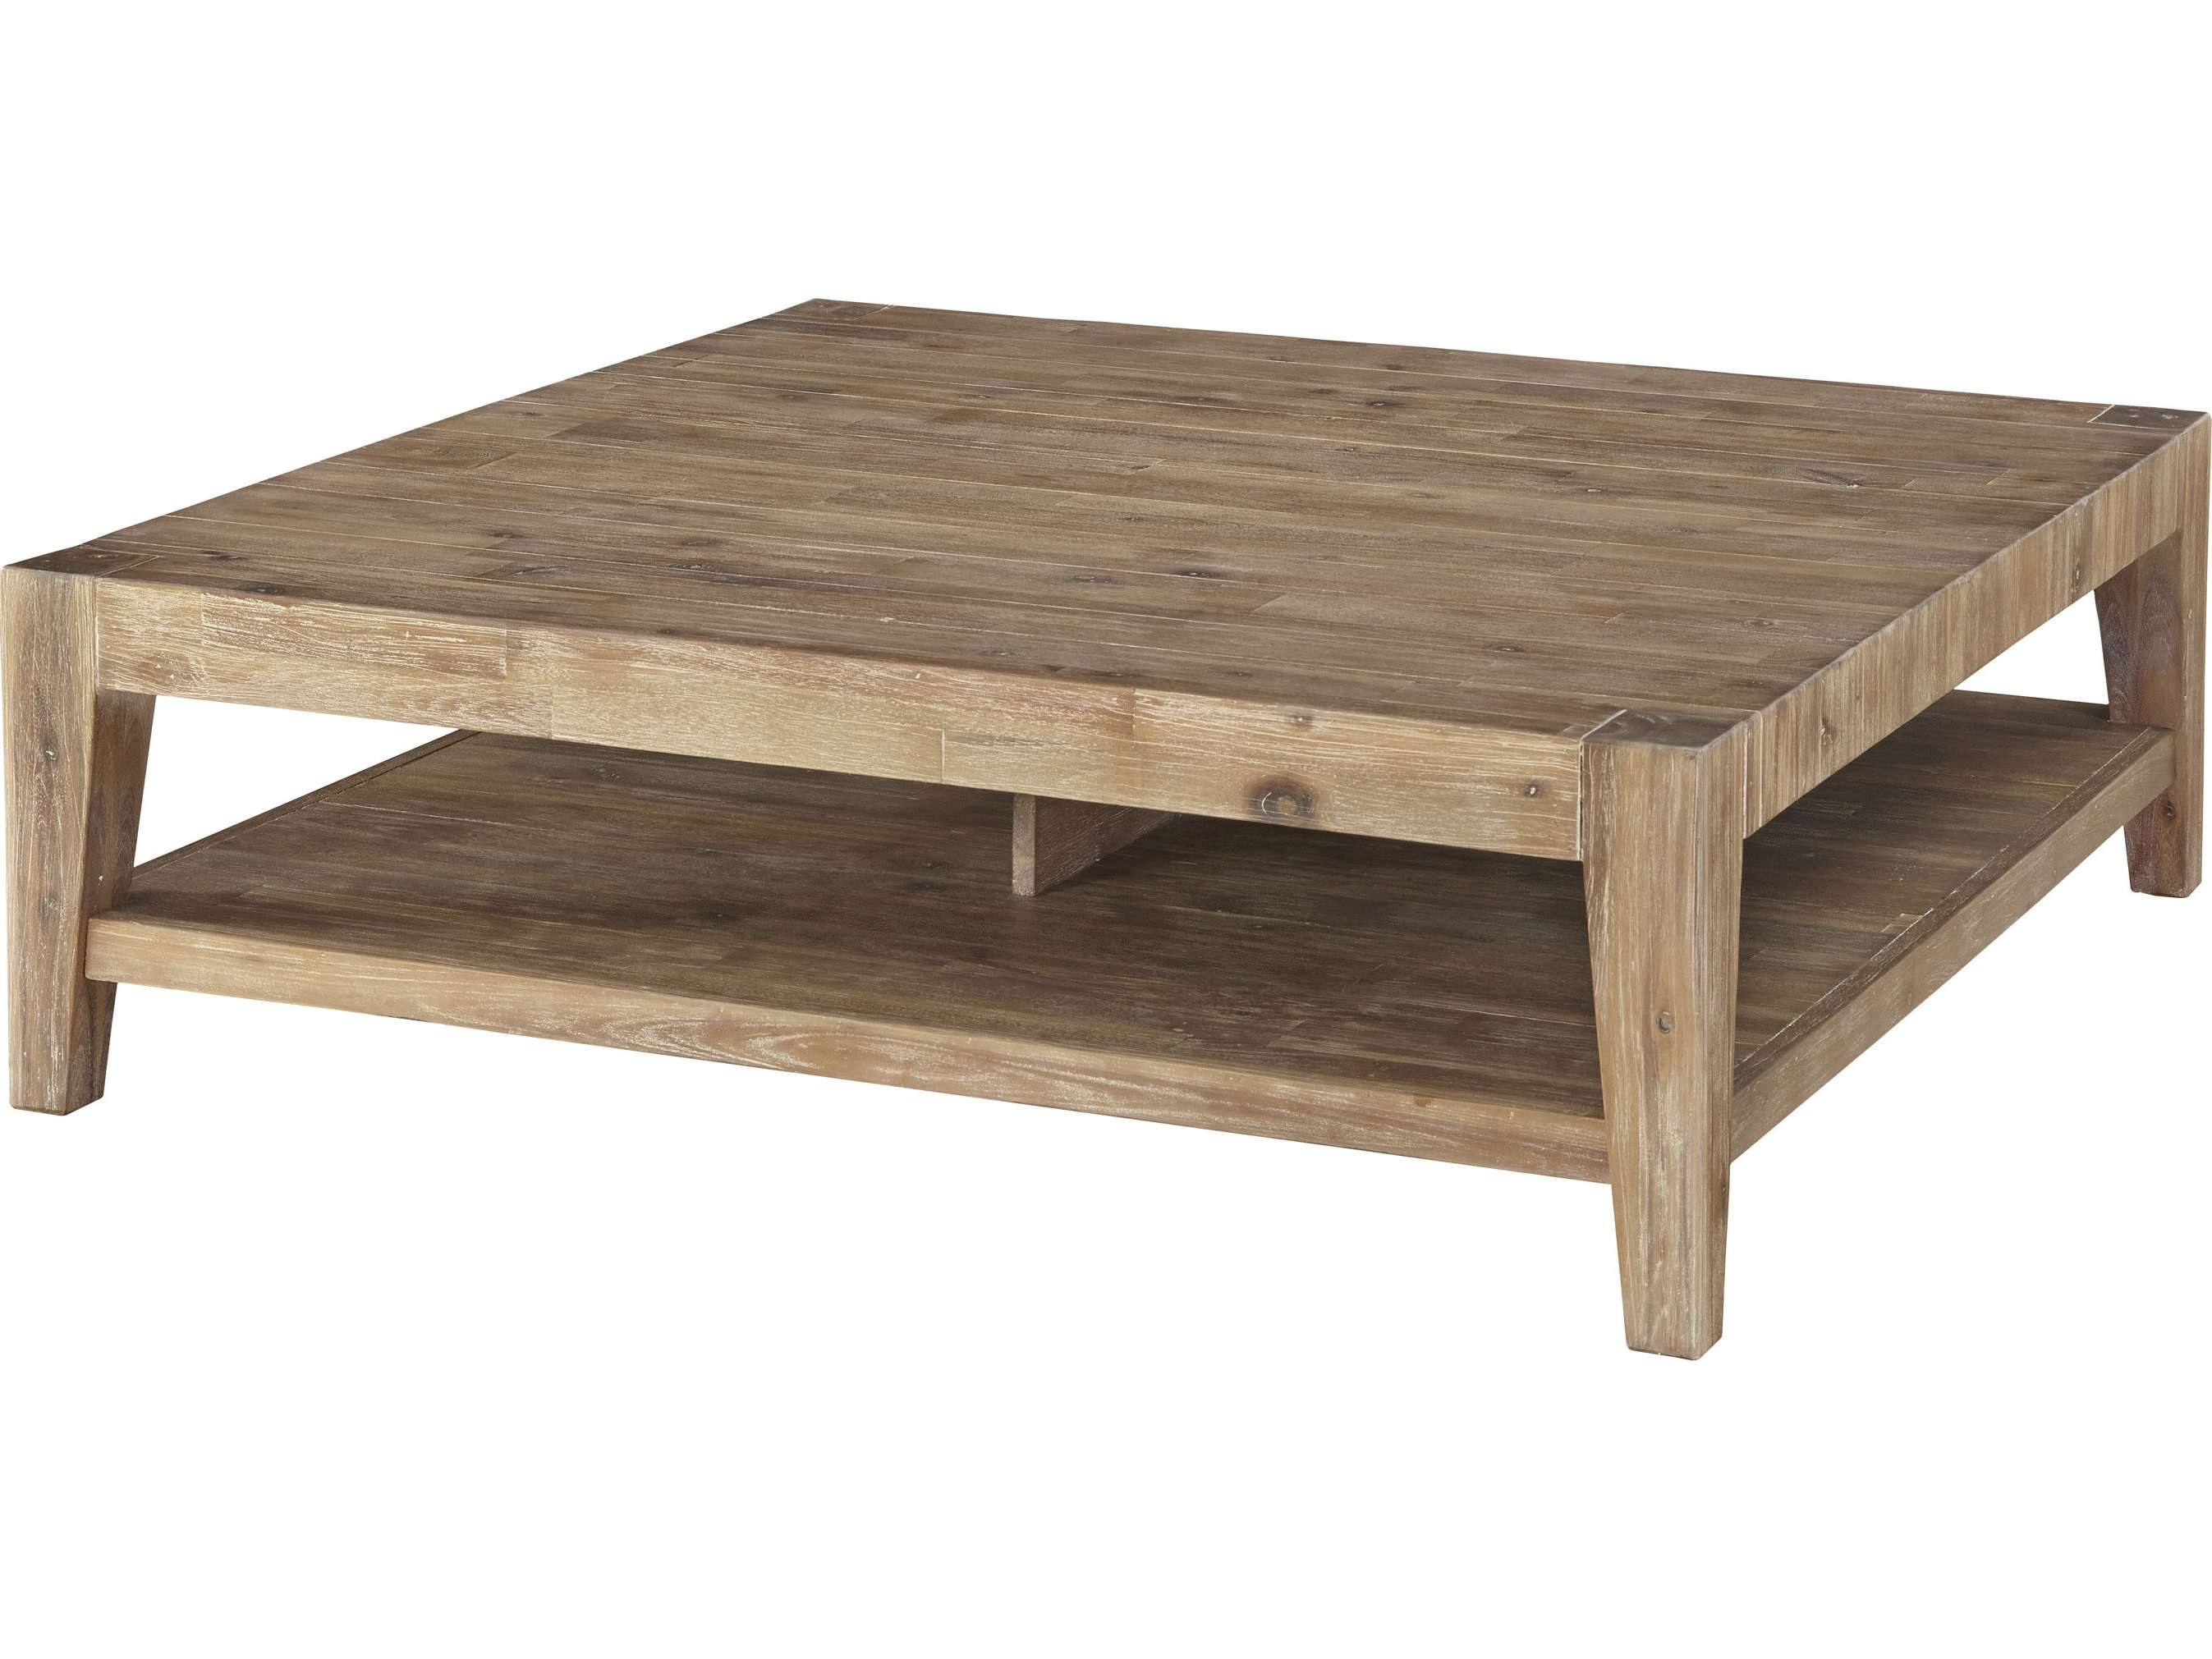 Coffee Table: Marvelous Square Wood Coffee Table Ideas Rustic Inside  Favorite Square Large Coffee Tables